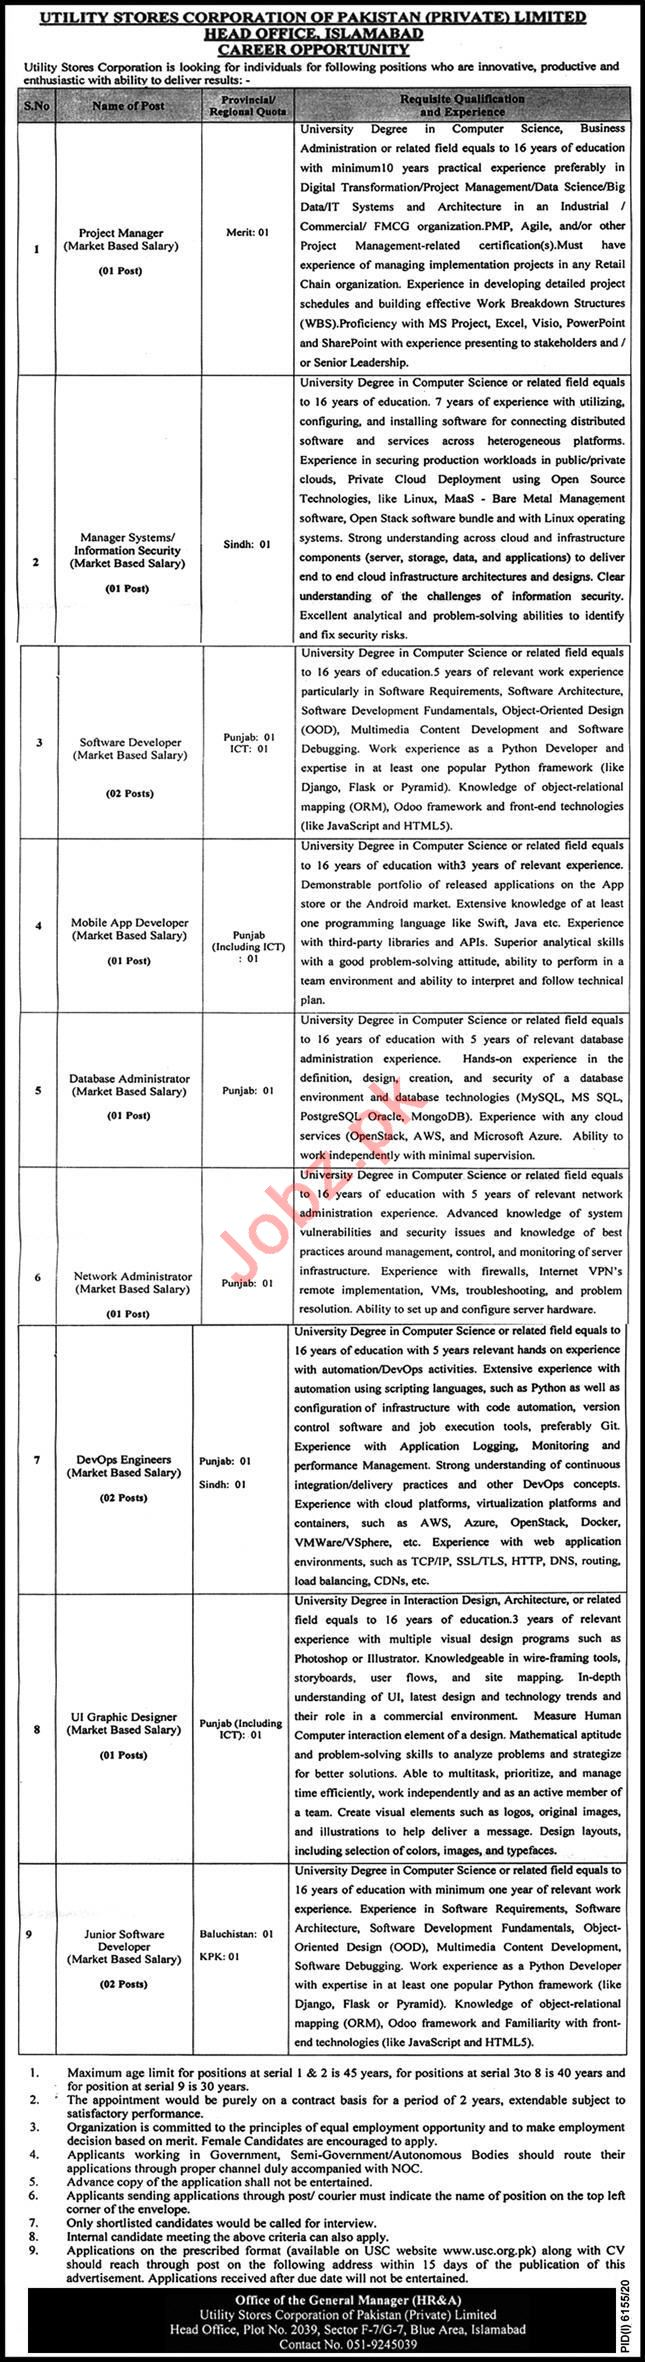 Utility Stores Corporation USC Islamabad Jobs for Managers